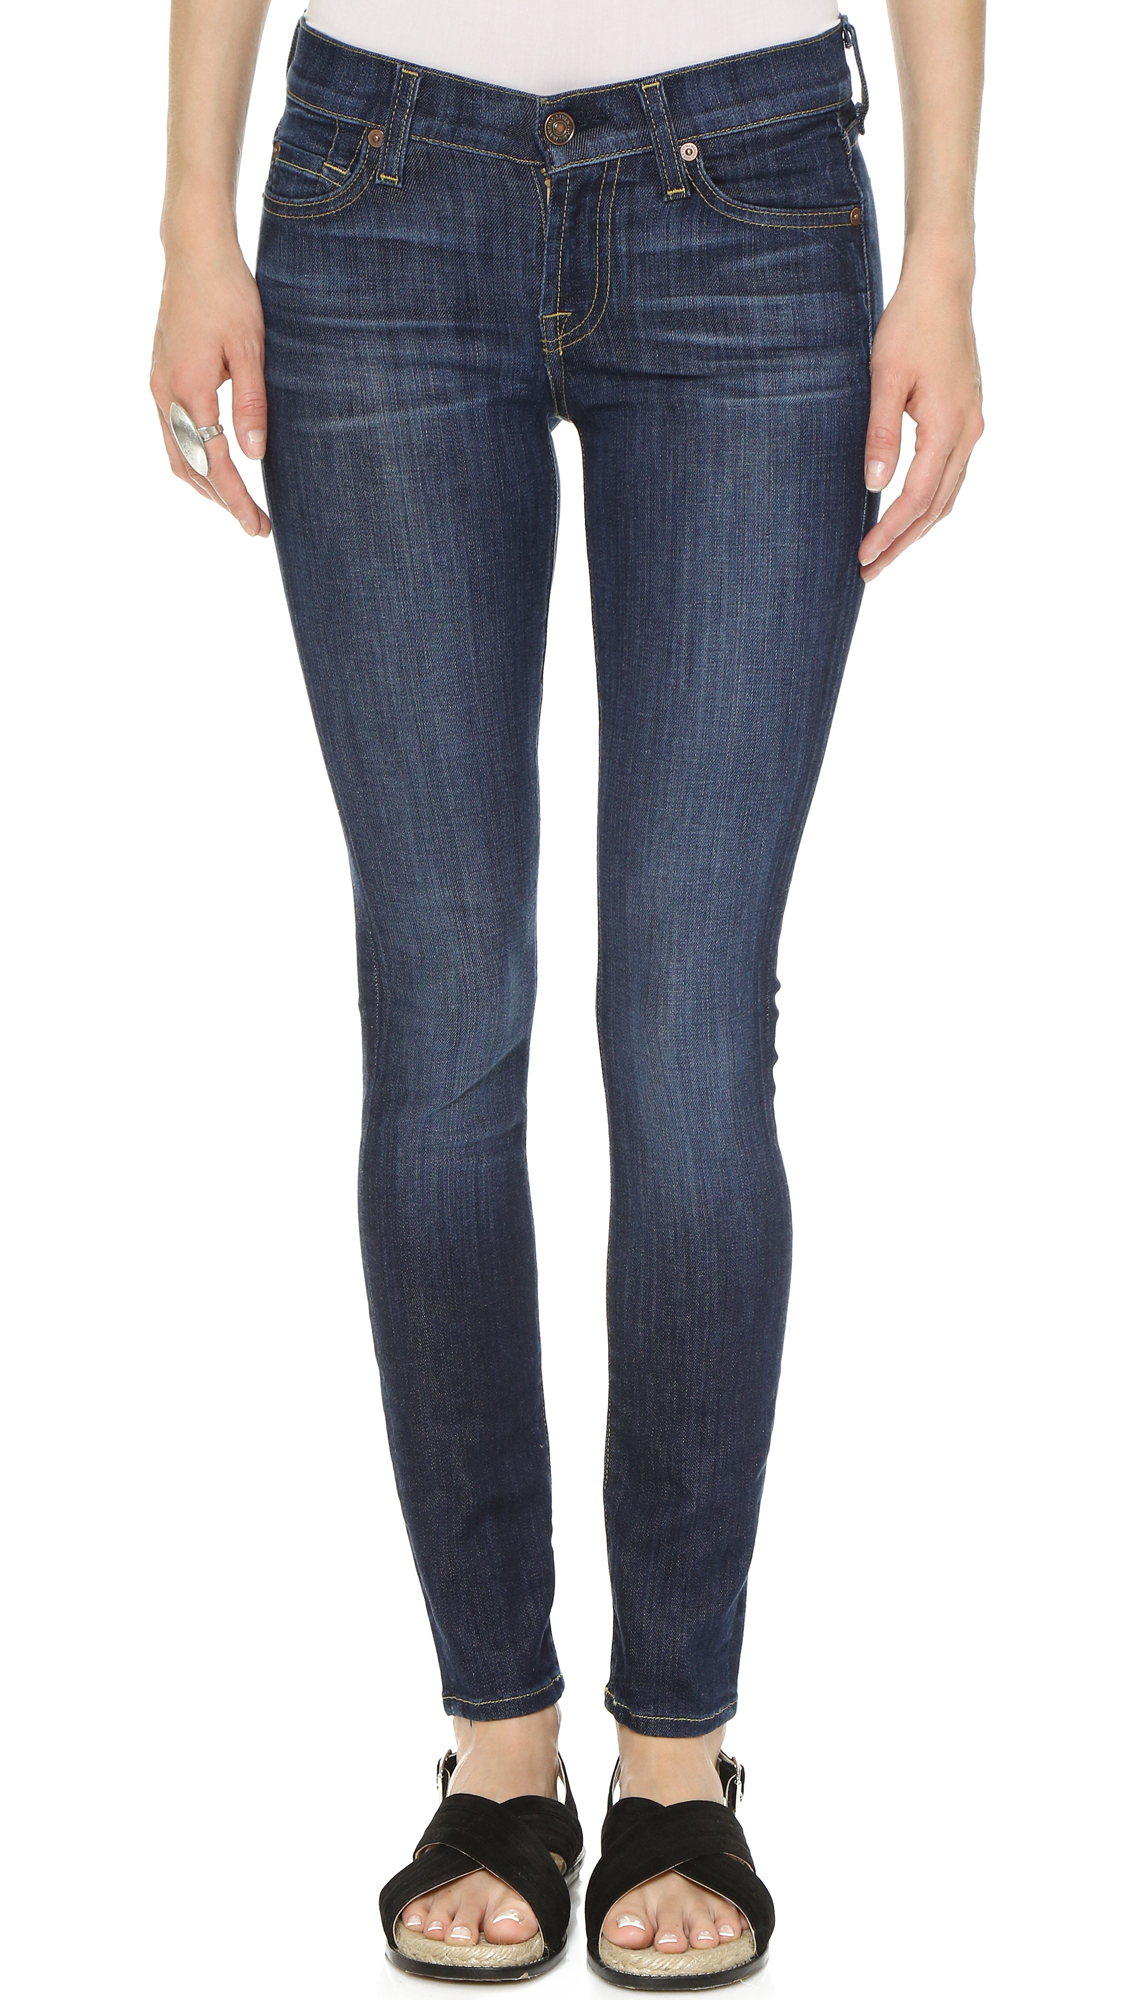 7 For All Mankind The Skinny Jeans - Nouveau New York Dark